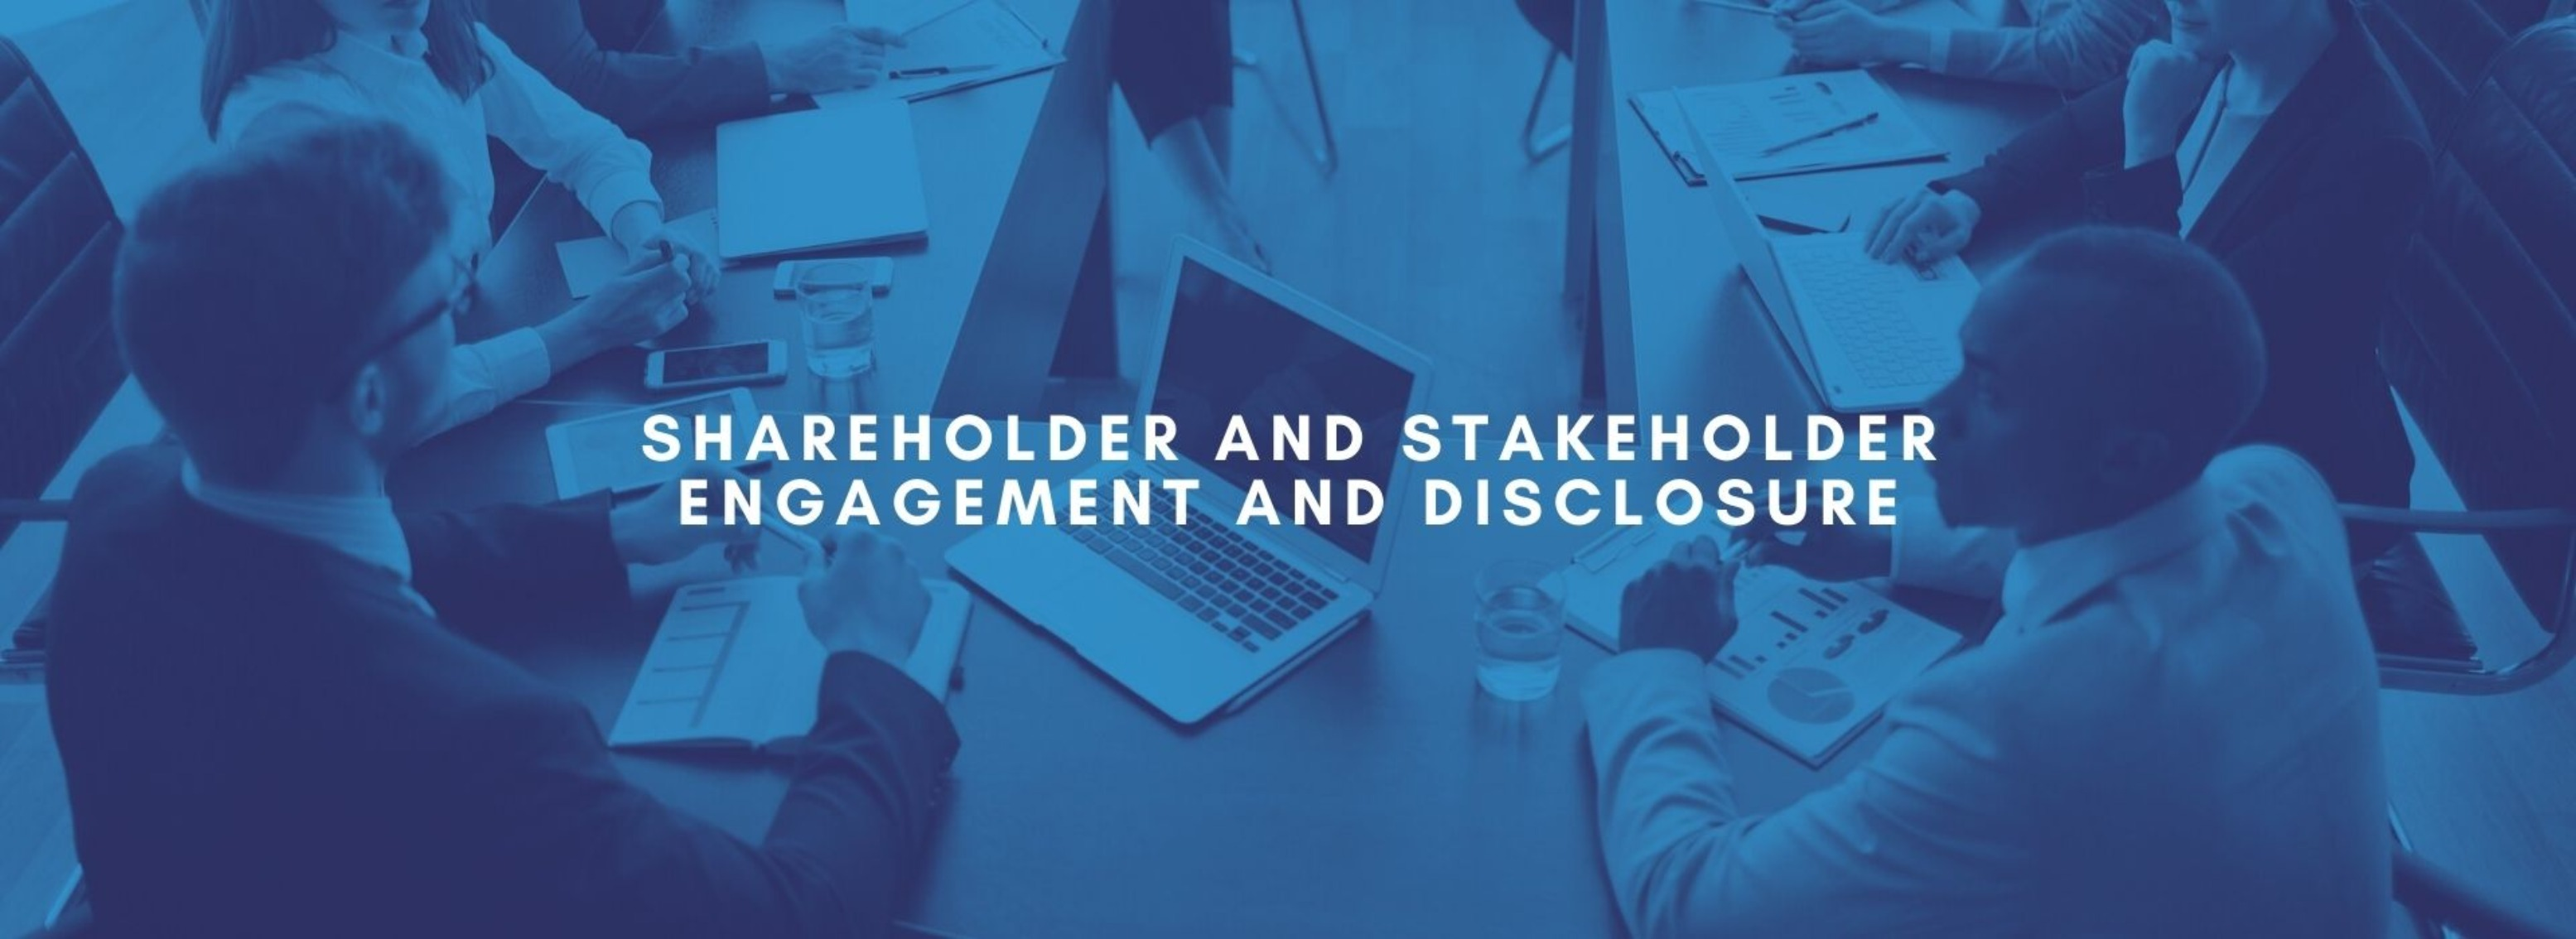 BM | Shareholder and Stakeholder Engagement and Disclosure | June 30th, 2021